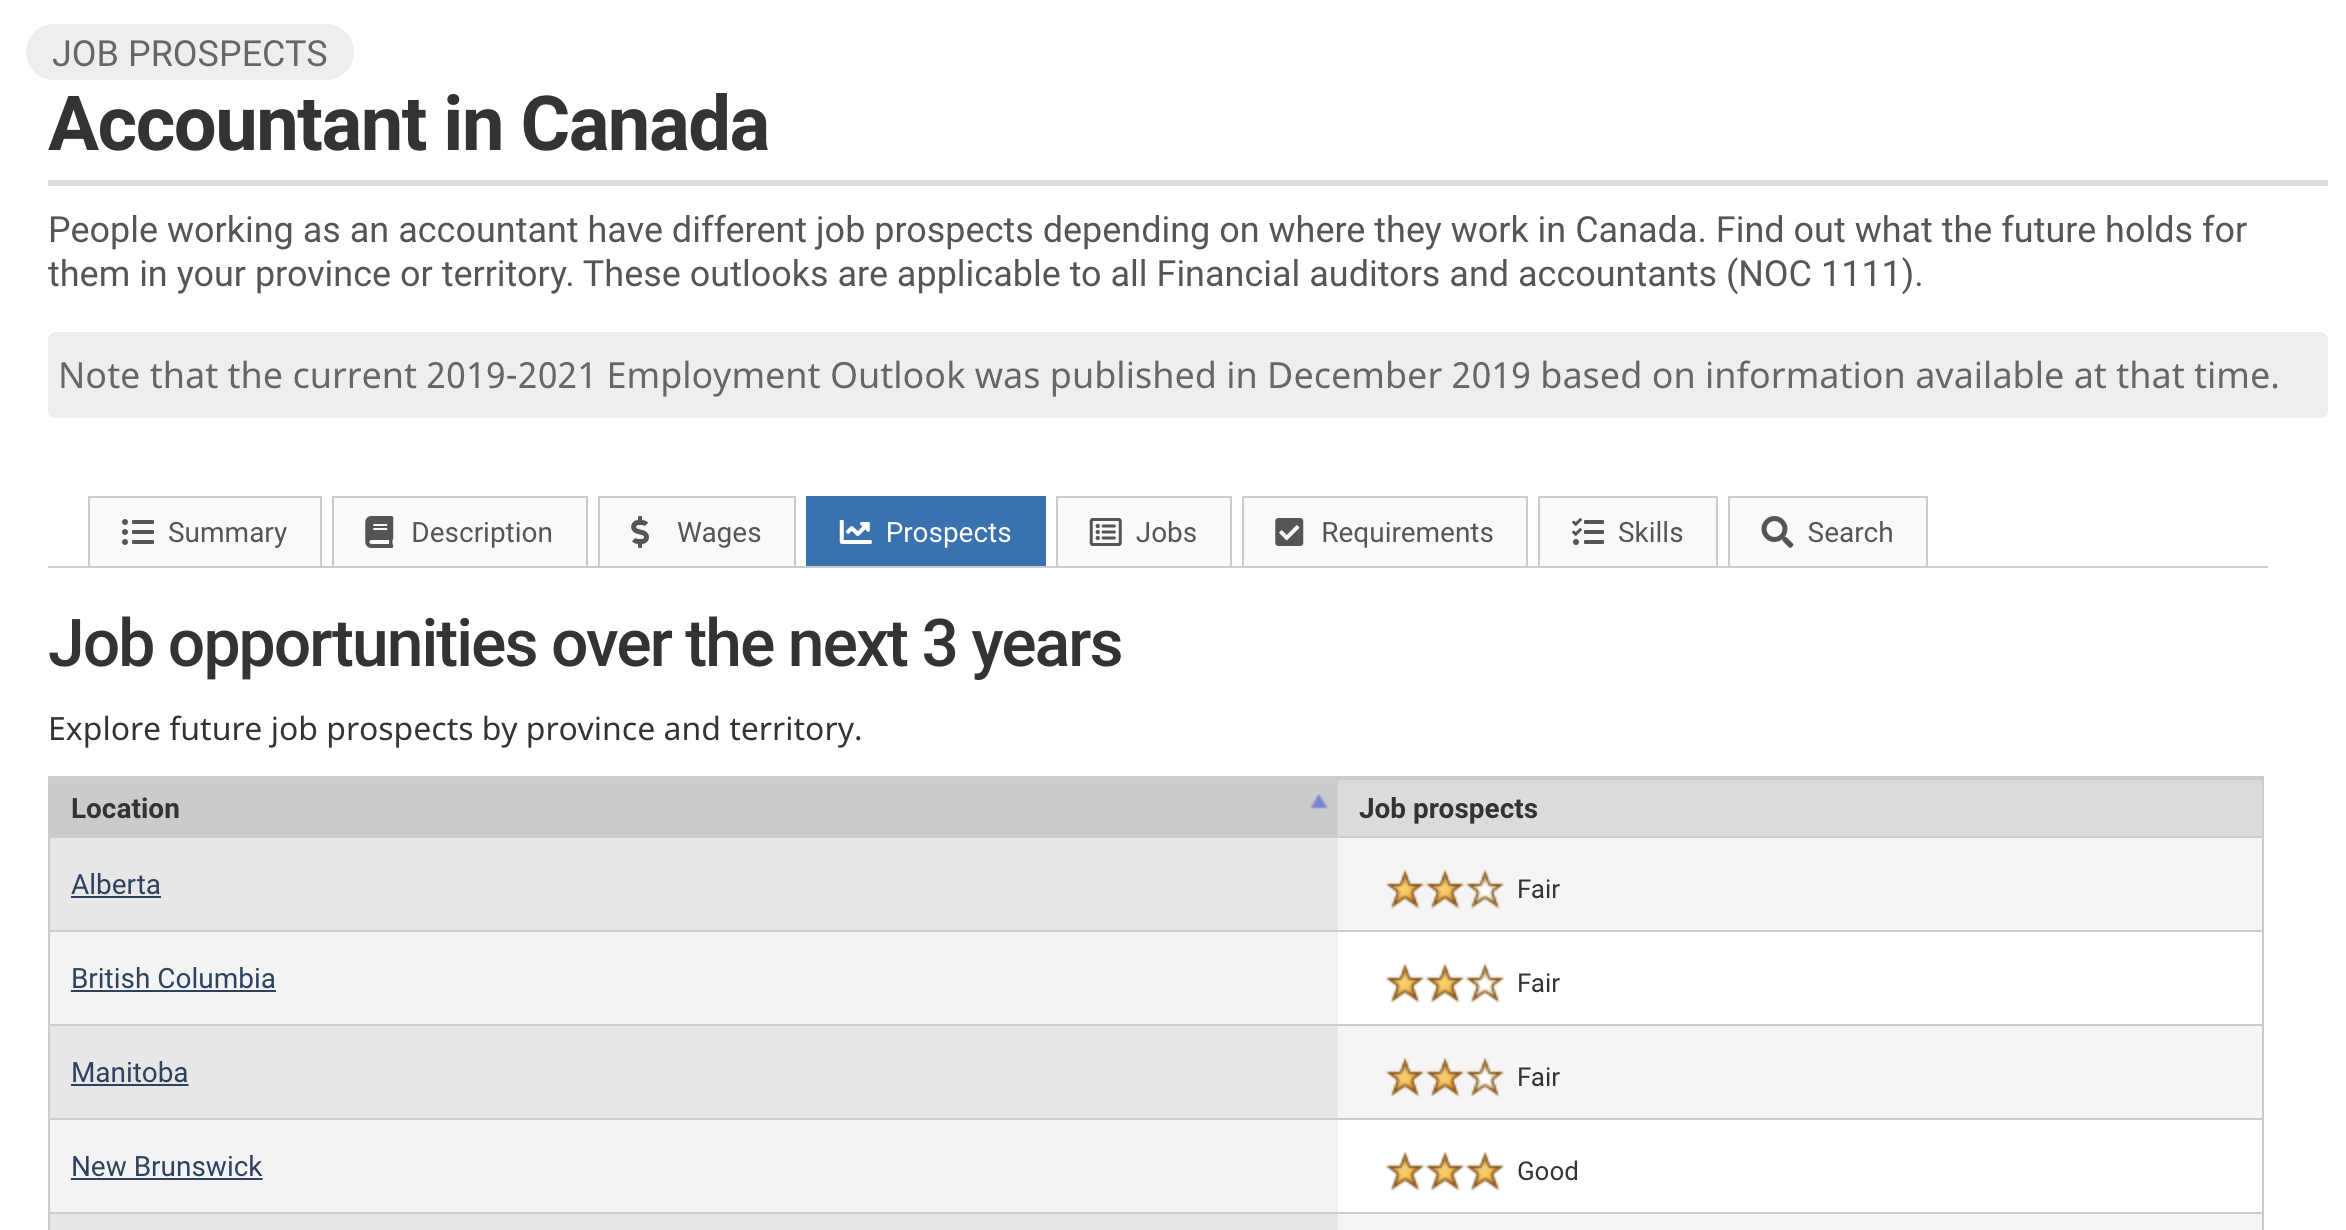 Image showing StatCan job prospects and trends for an Accountant in Canada